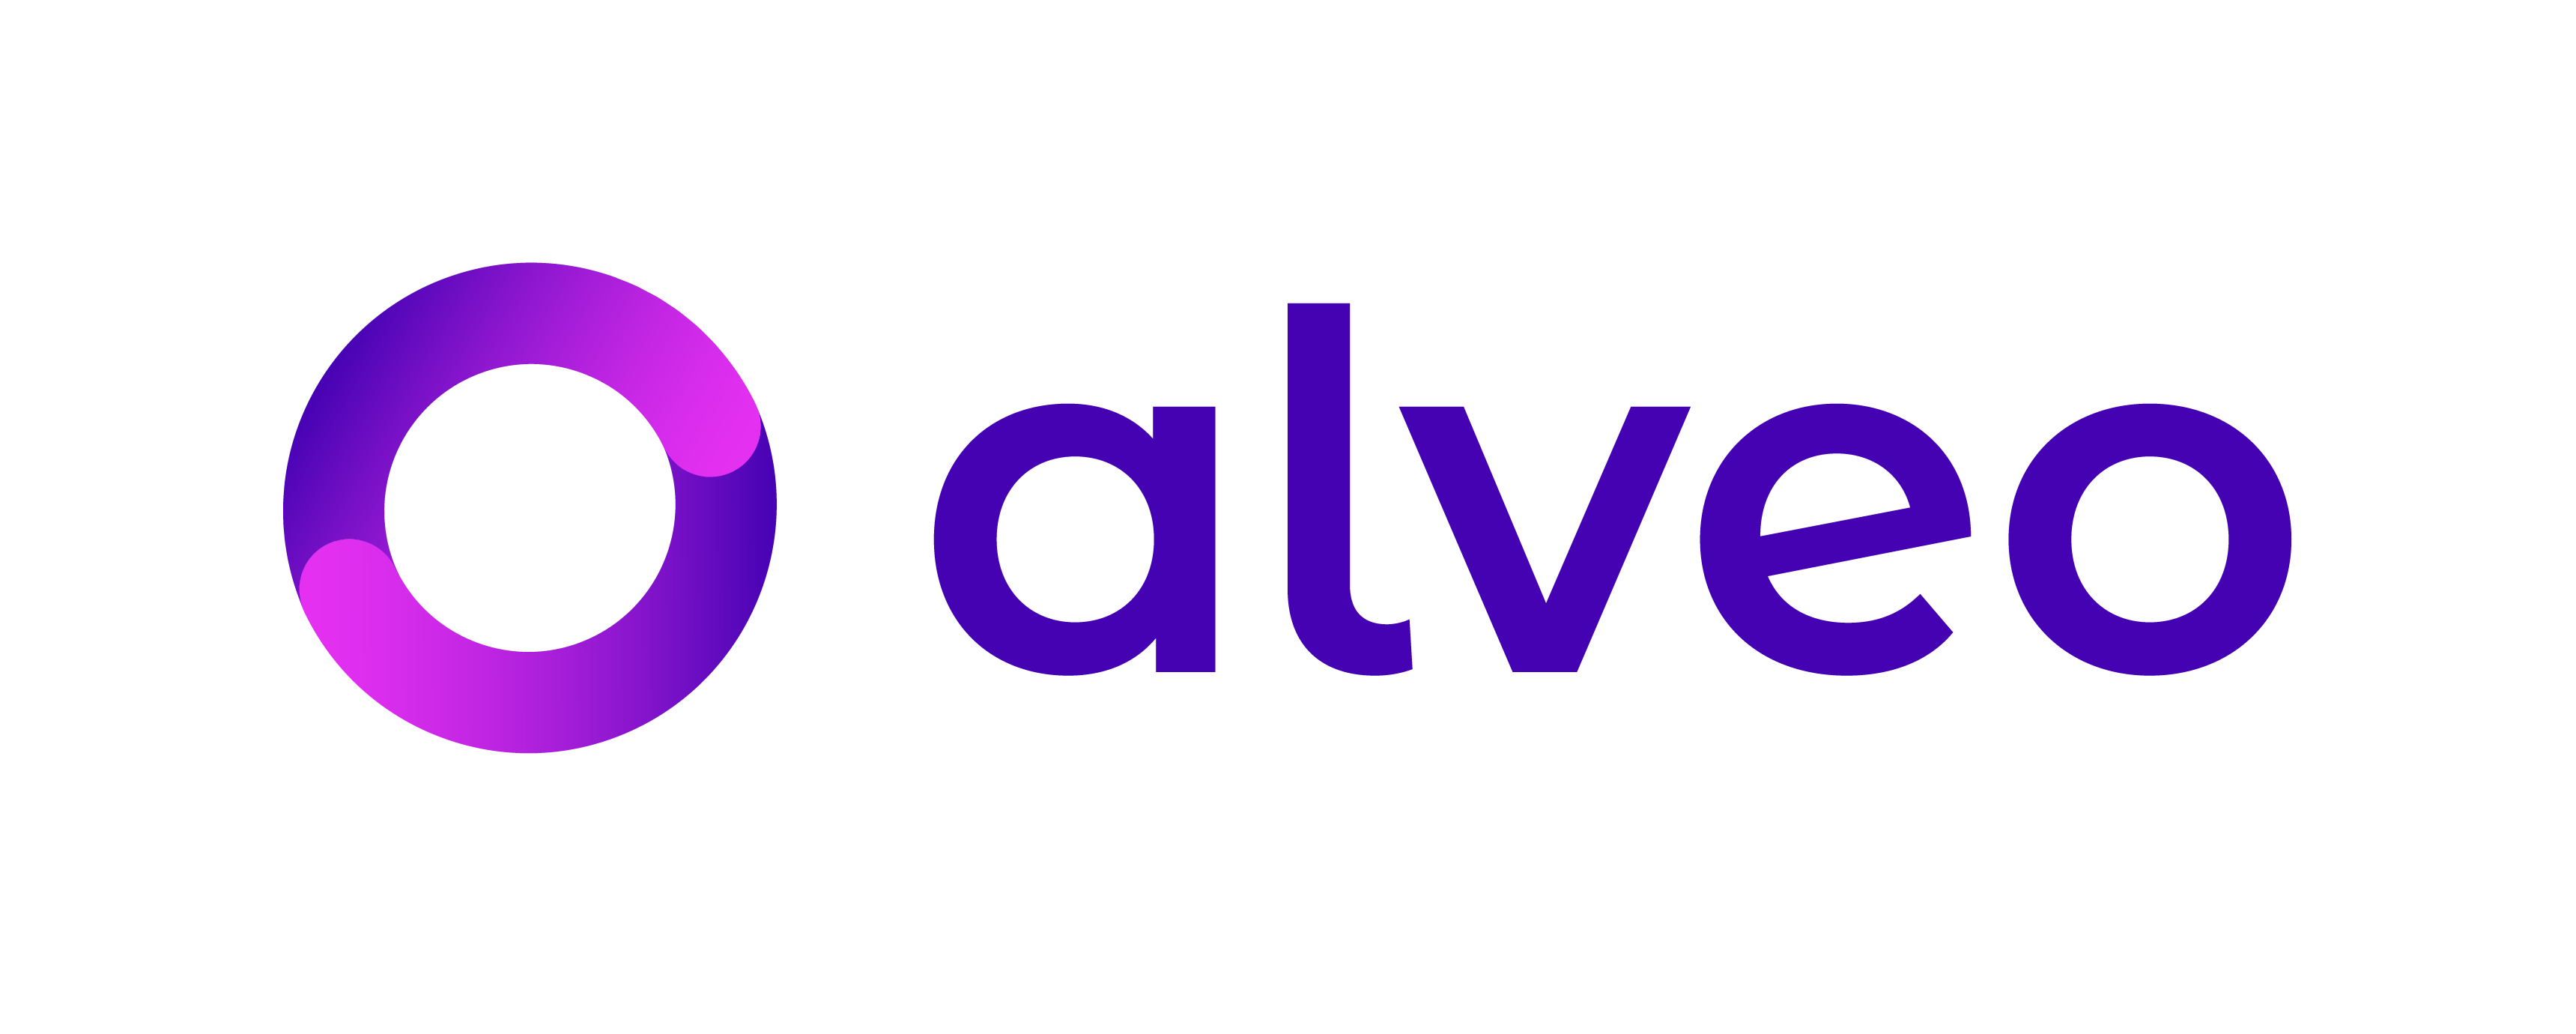 Alveo Introduces Postgres Support to Help Market Data Infrastructure Shift to the Cloud